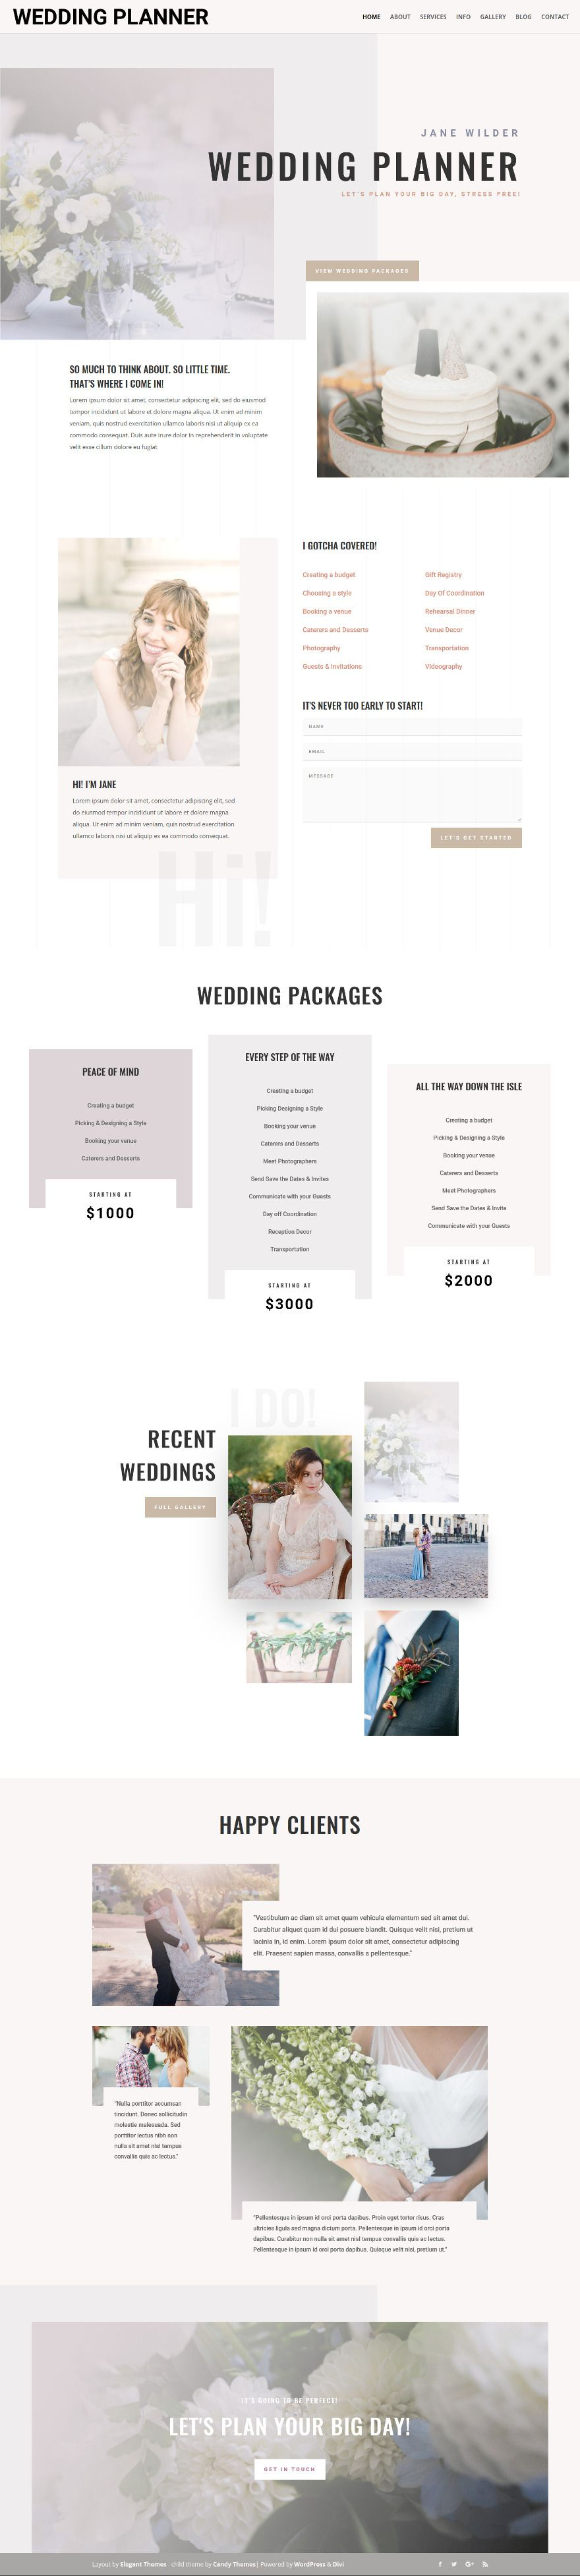 Attractive Theme Wedding Planners Images - Wedding Idea 2018 ...